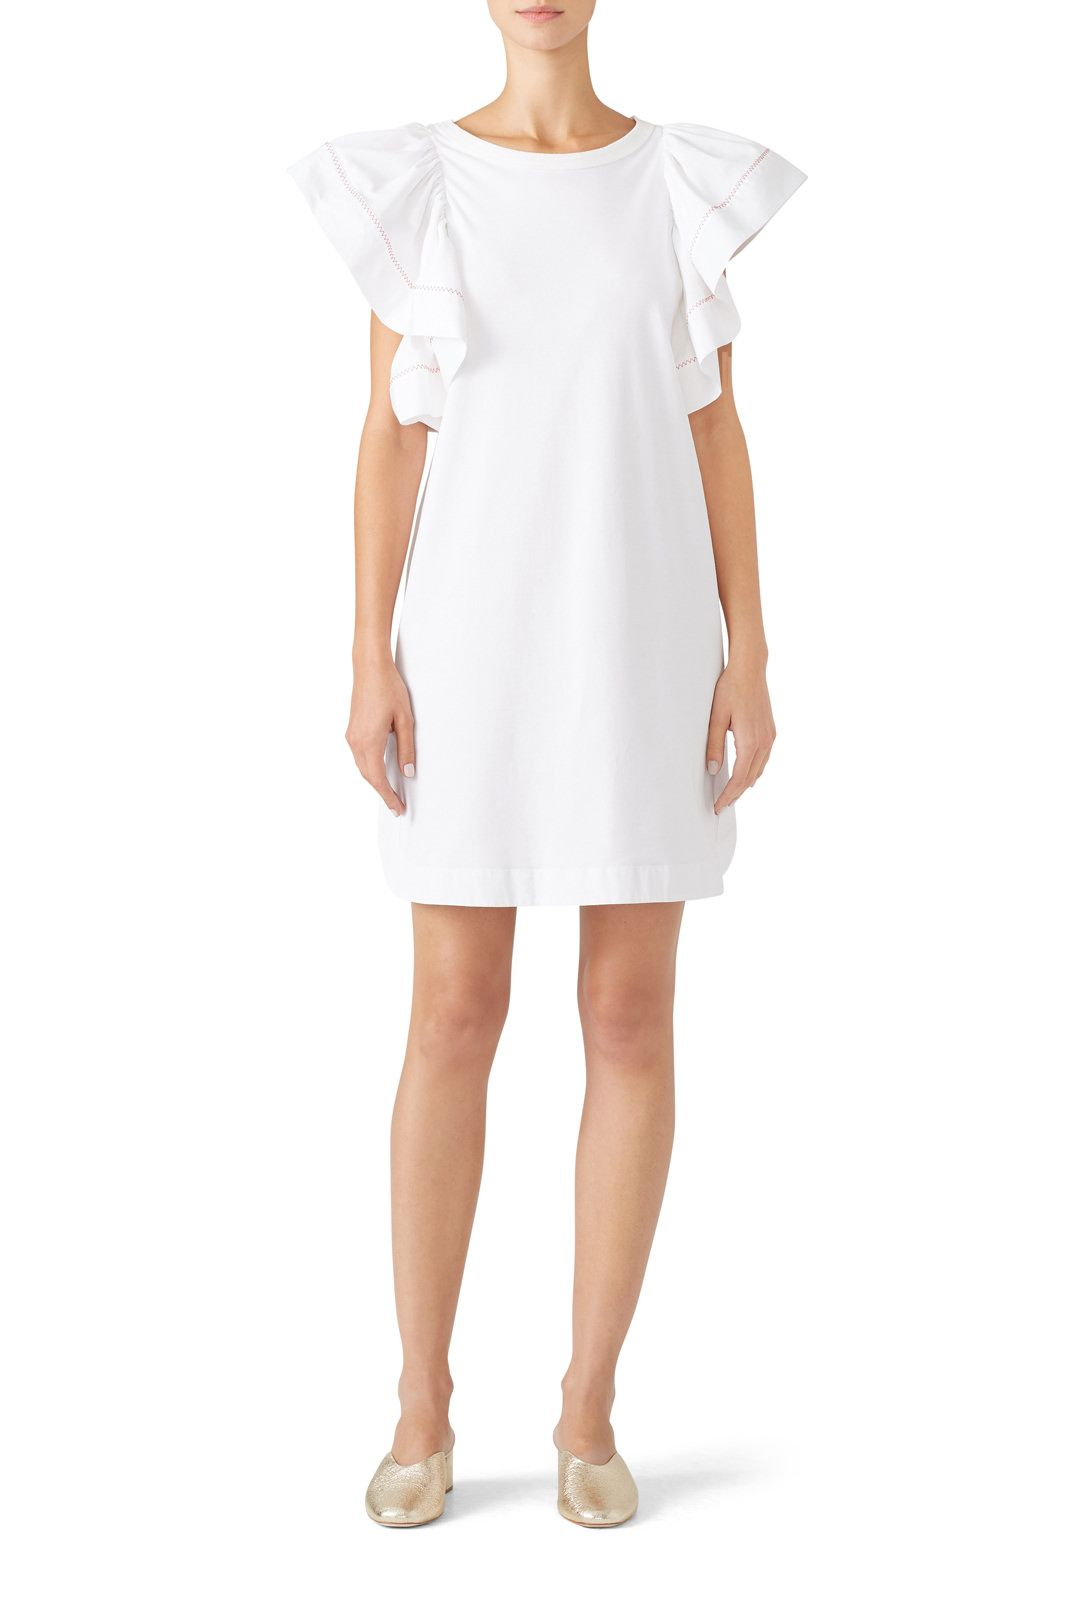 4d4d4d416ee Rent Flouncy Sleeve Dress by See by Chloe for  55 only at Rent the Runway.